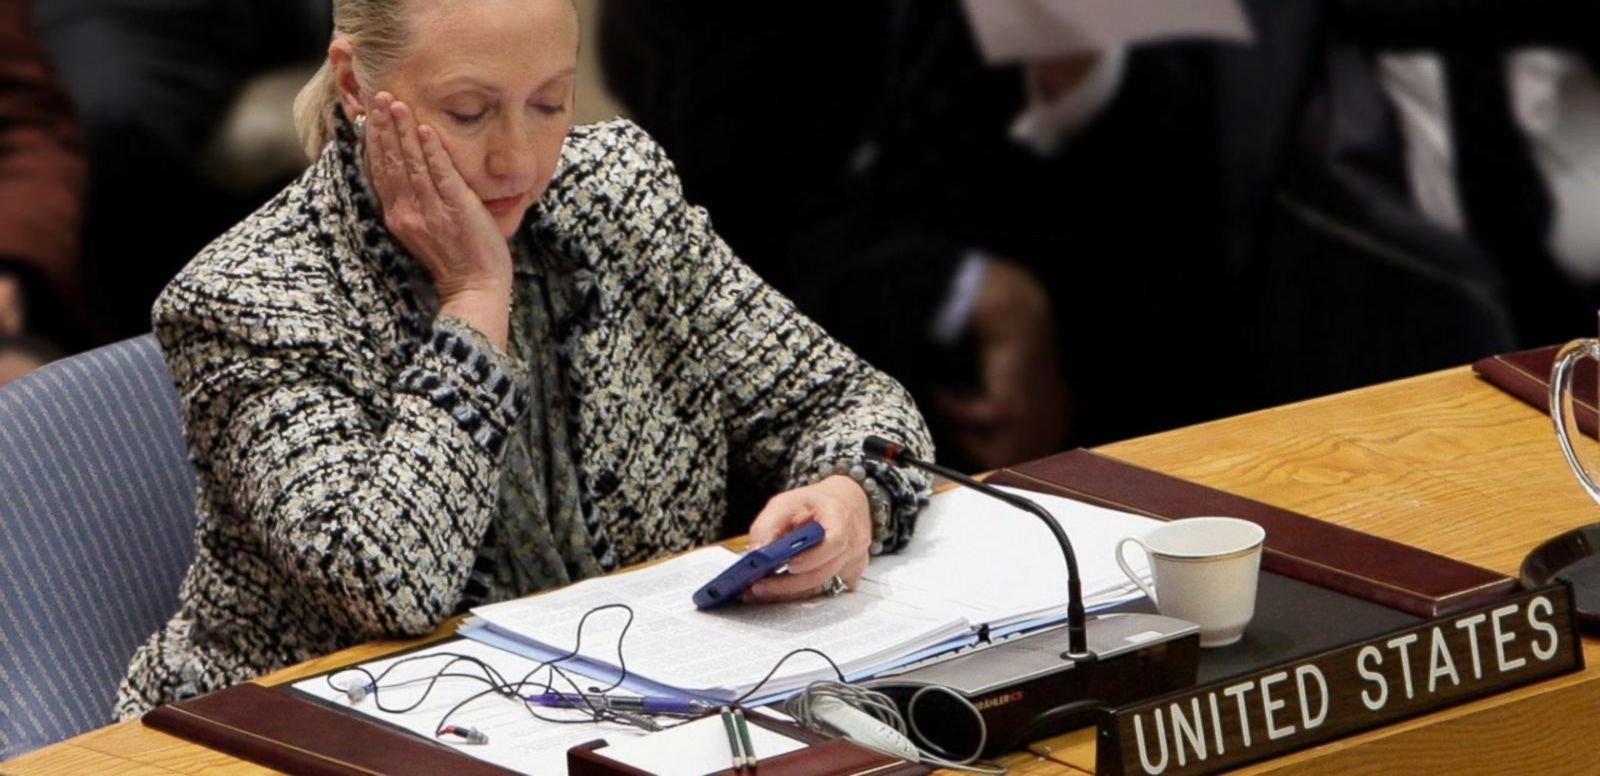 VIDEO: How Hillary Clinton's Email Controversy Will Impact Her Campaign